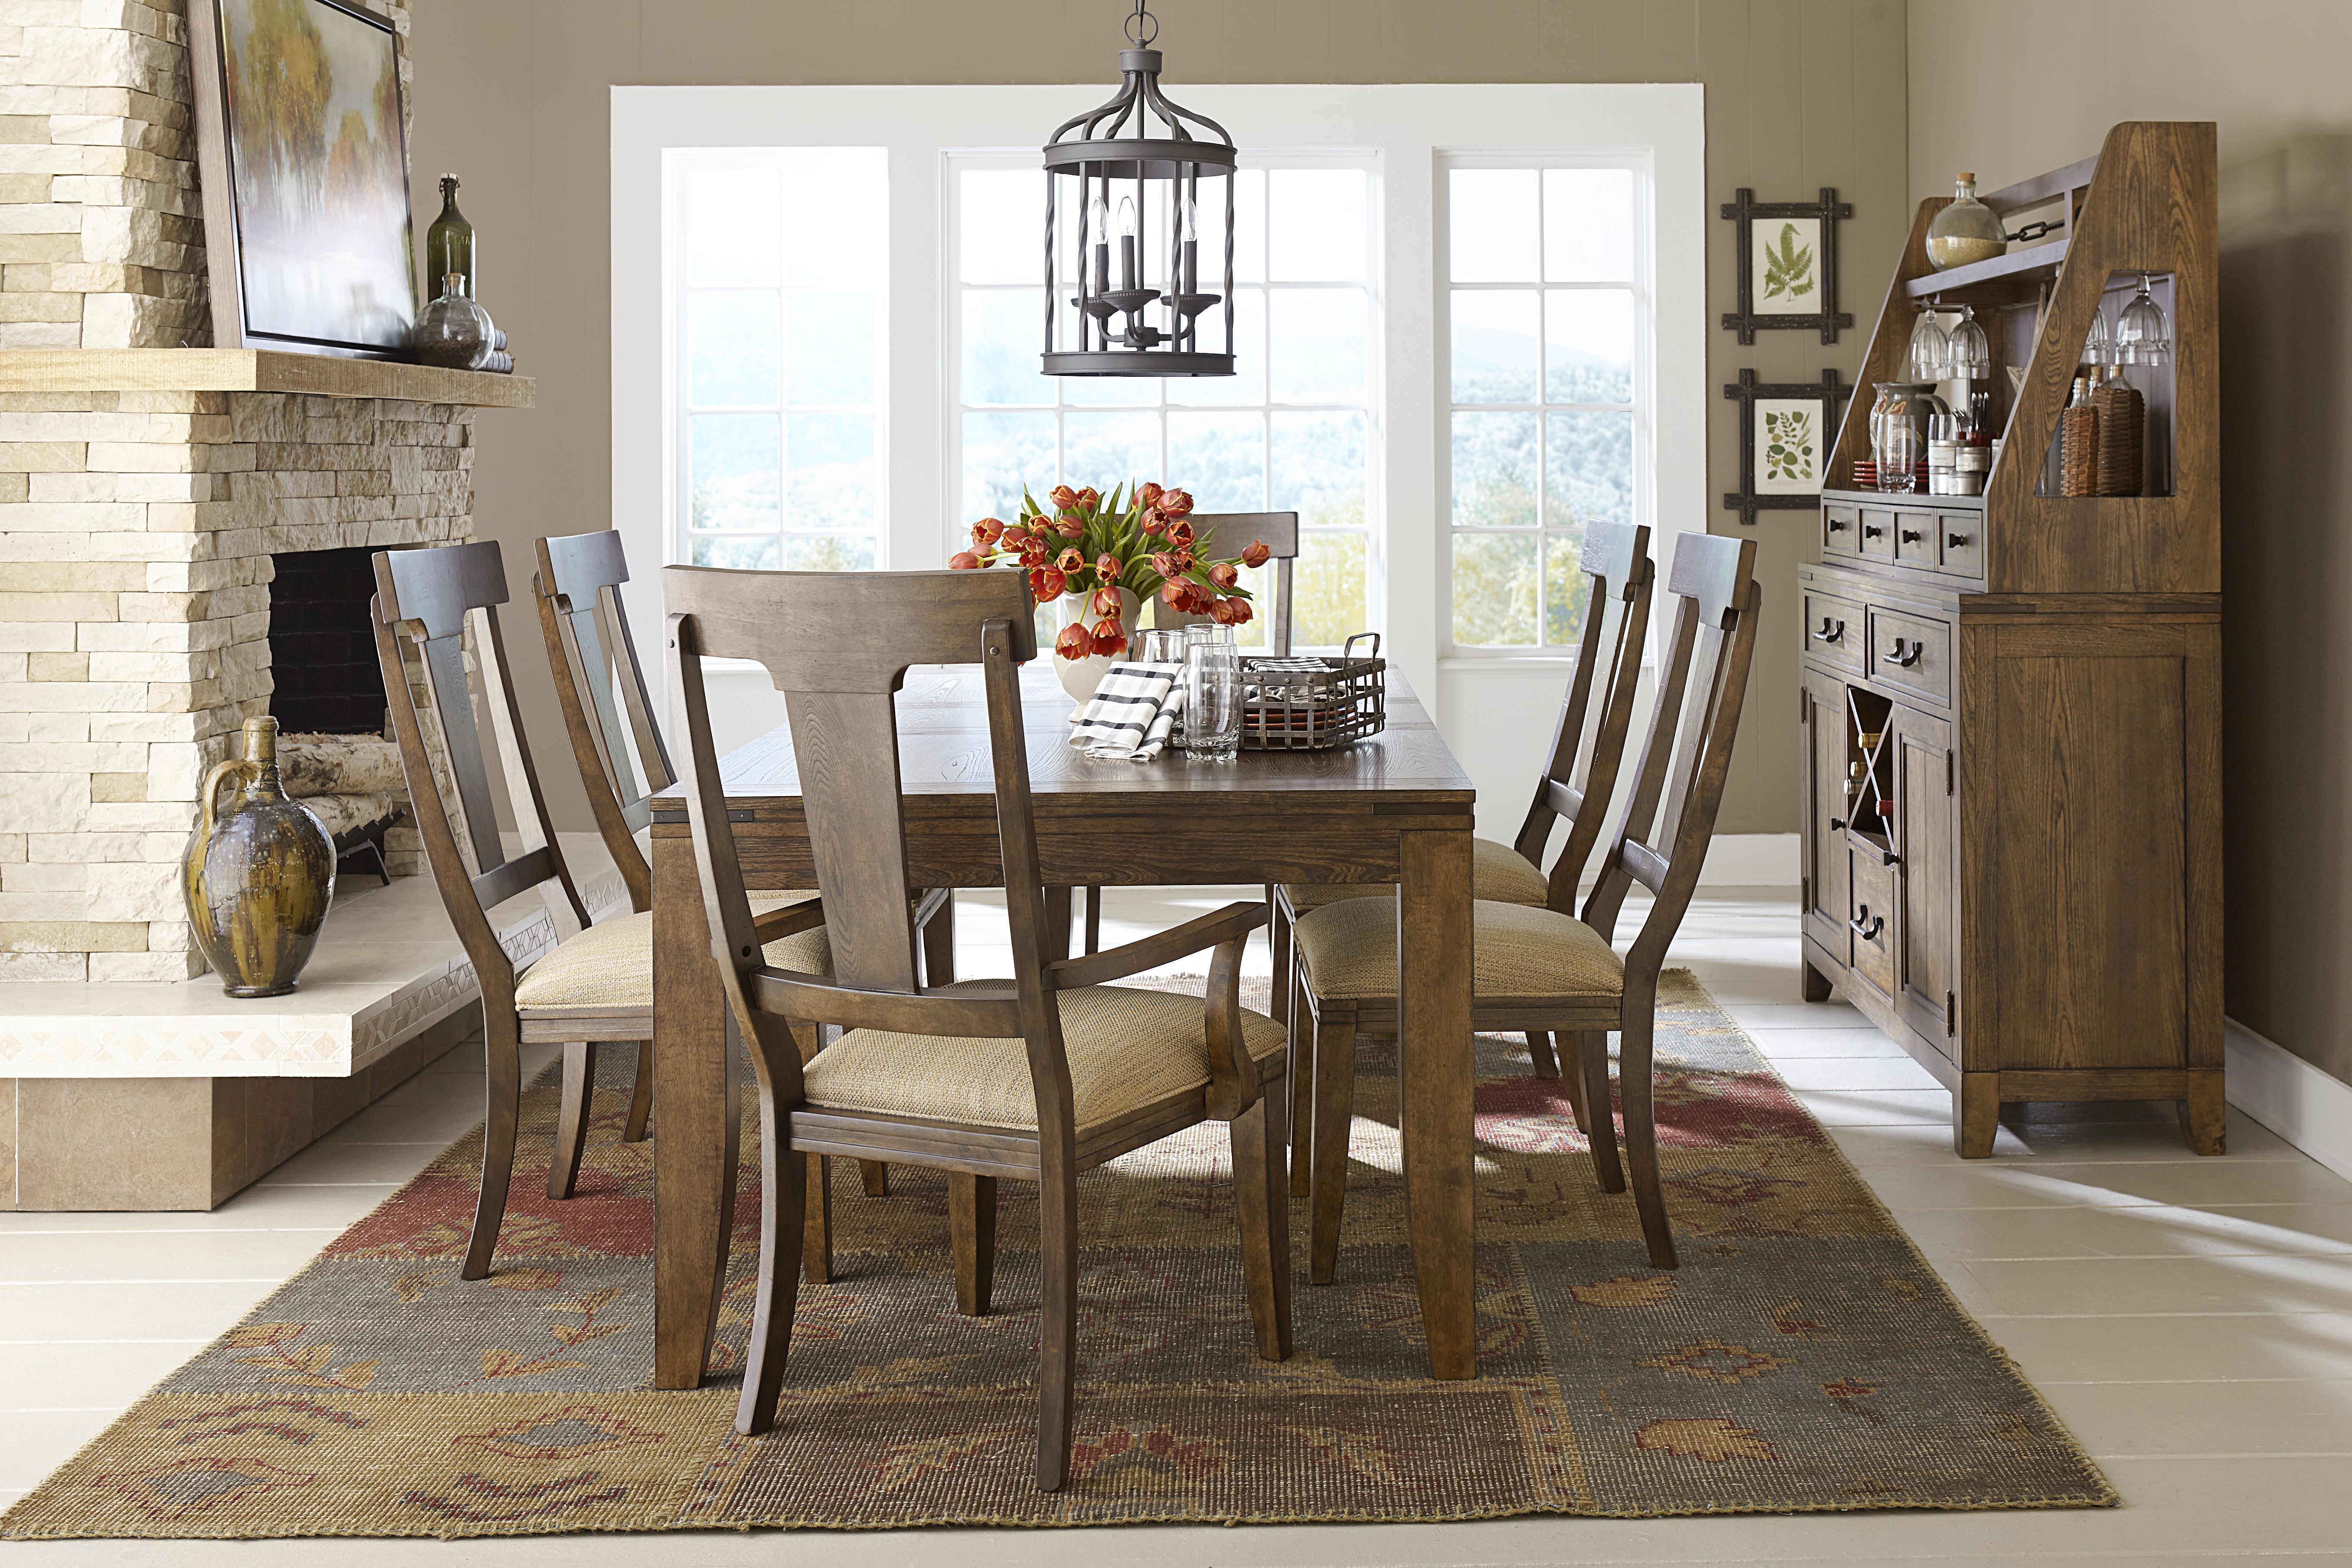 Kitchen & Dining Furniture Bundles